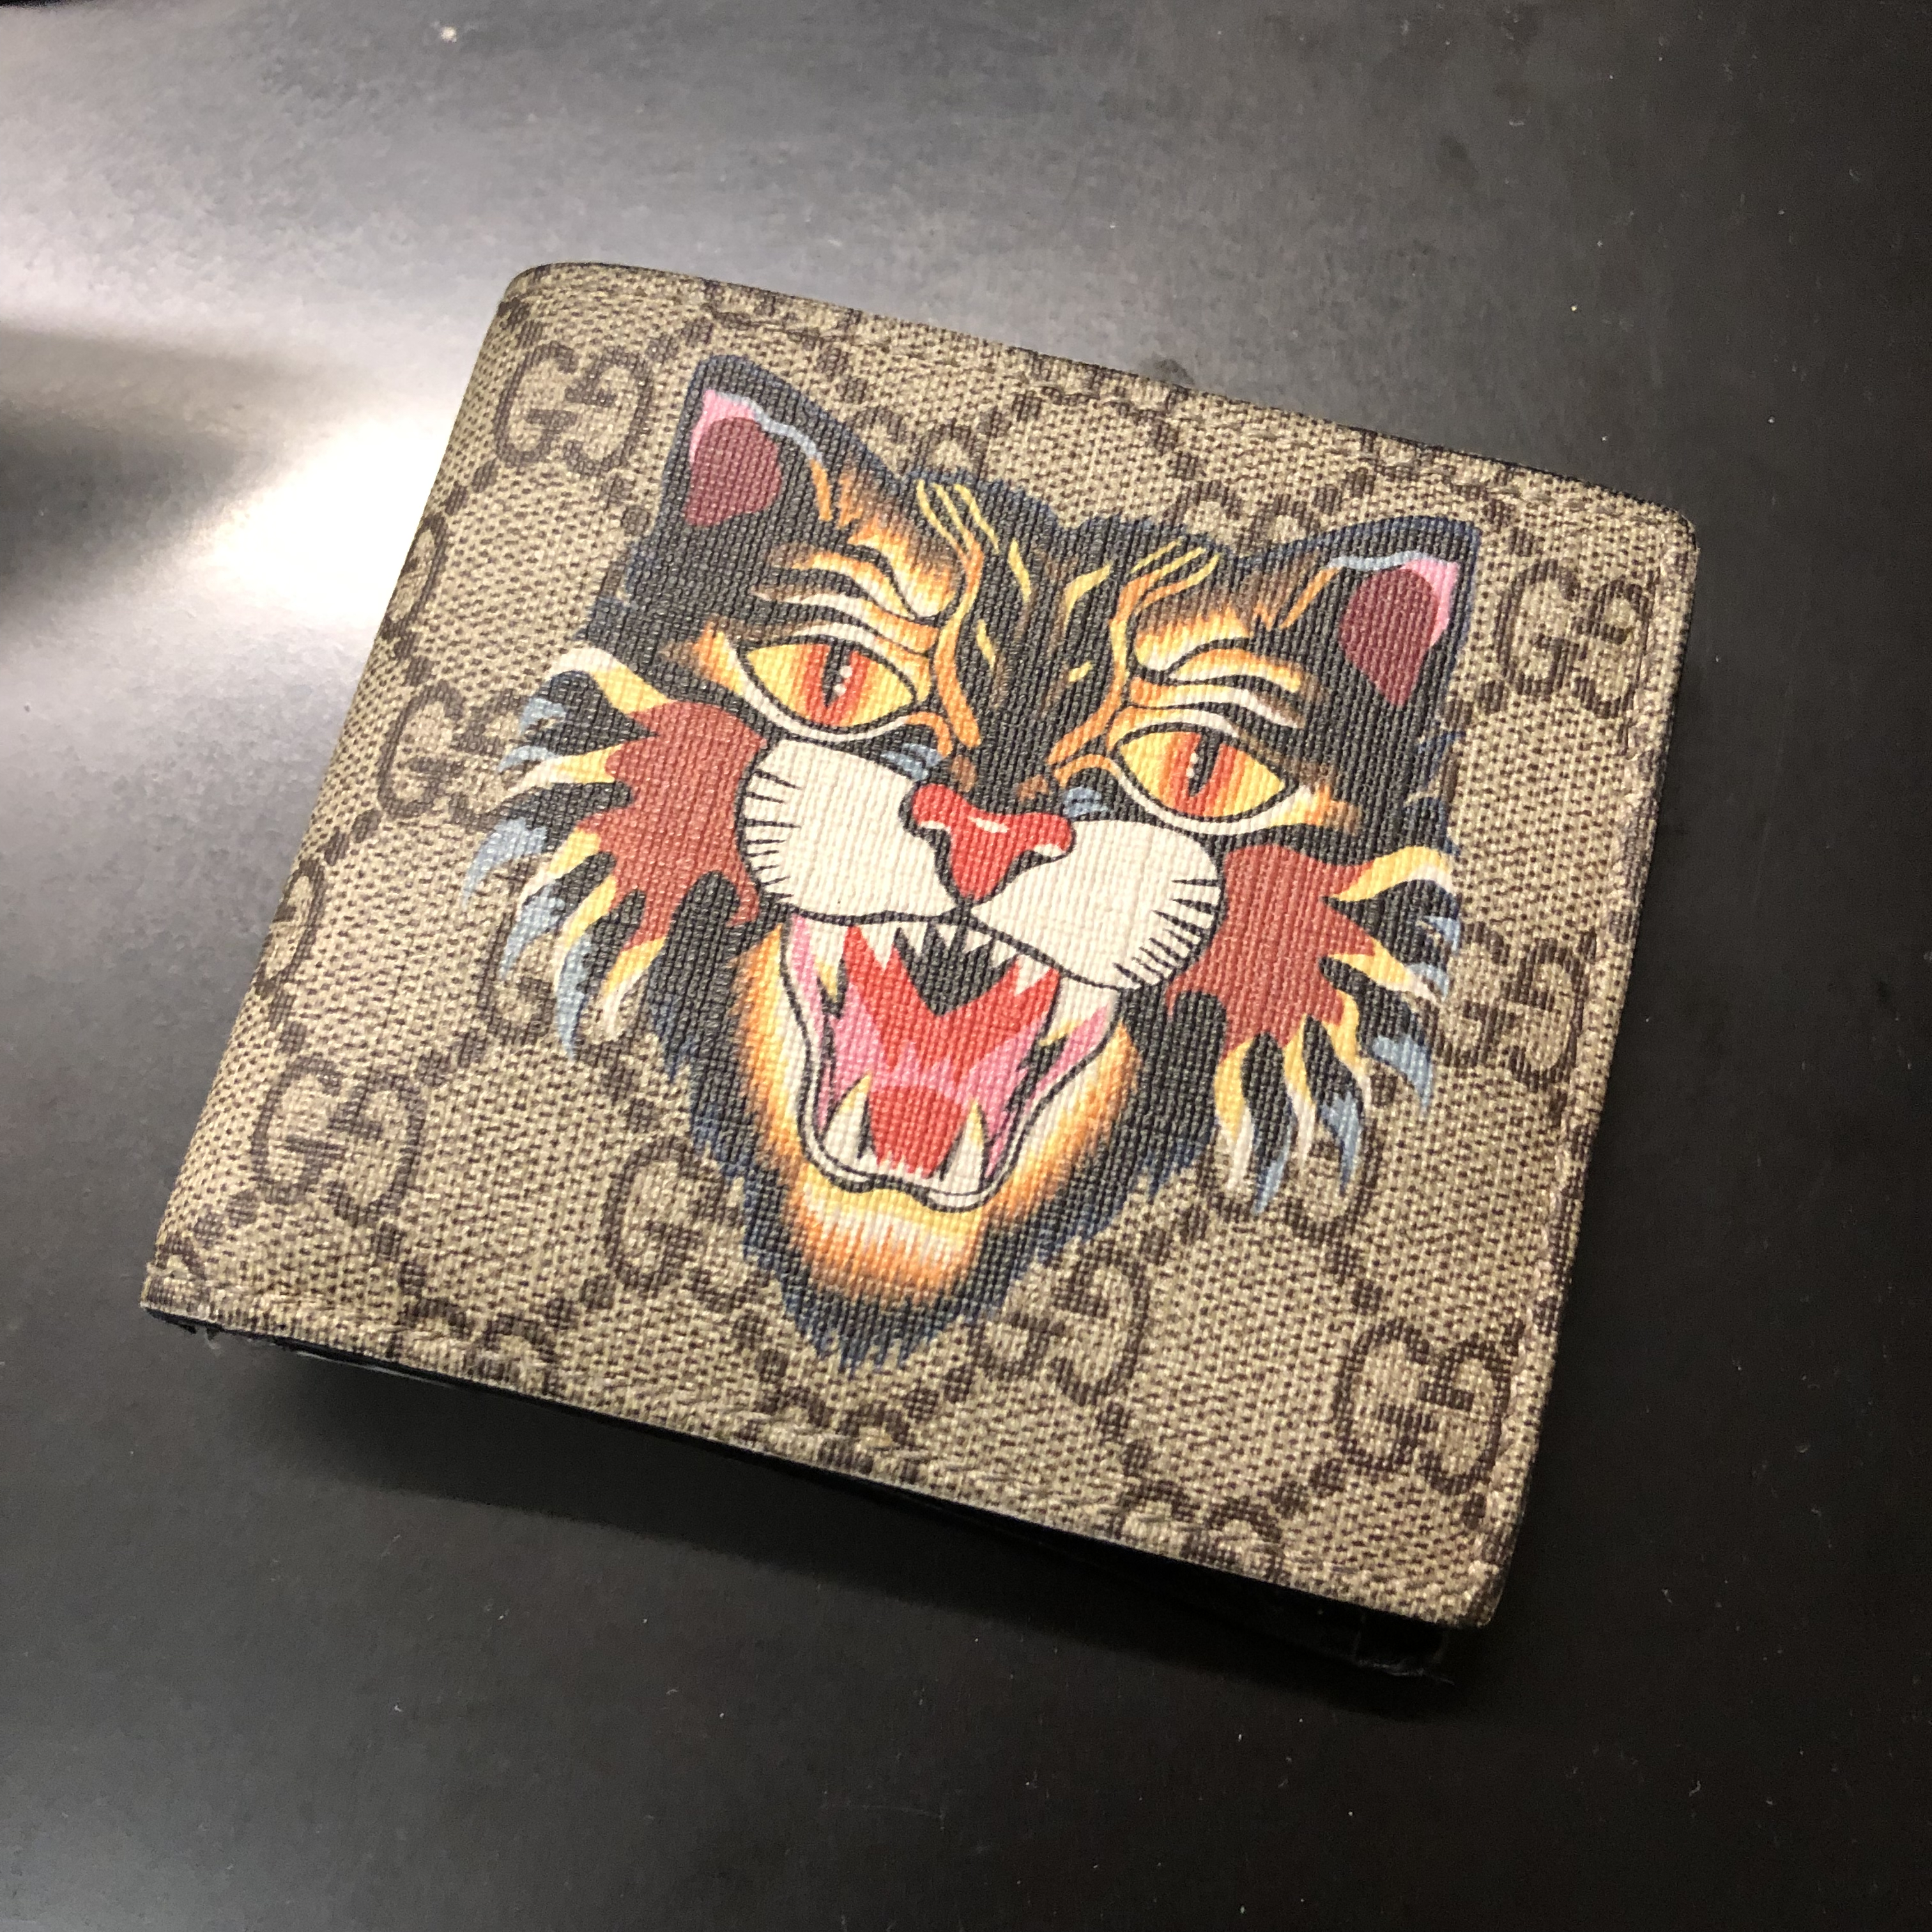 94a843b1875d Gucci Gucci Angry Cat Print Gg Supreme Wallet With Coin Pouch | Grailed